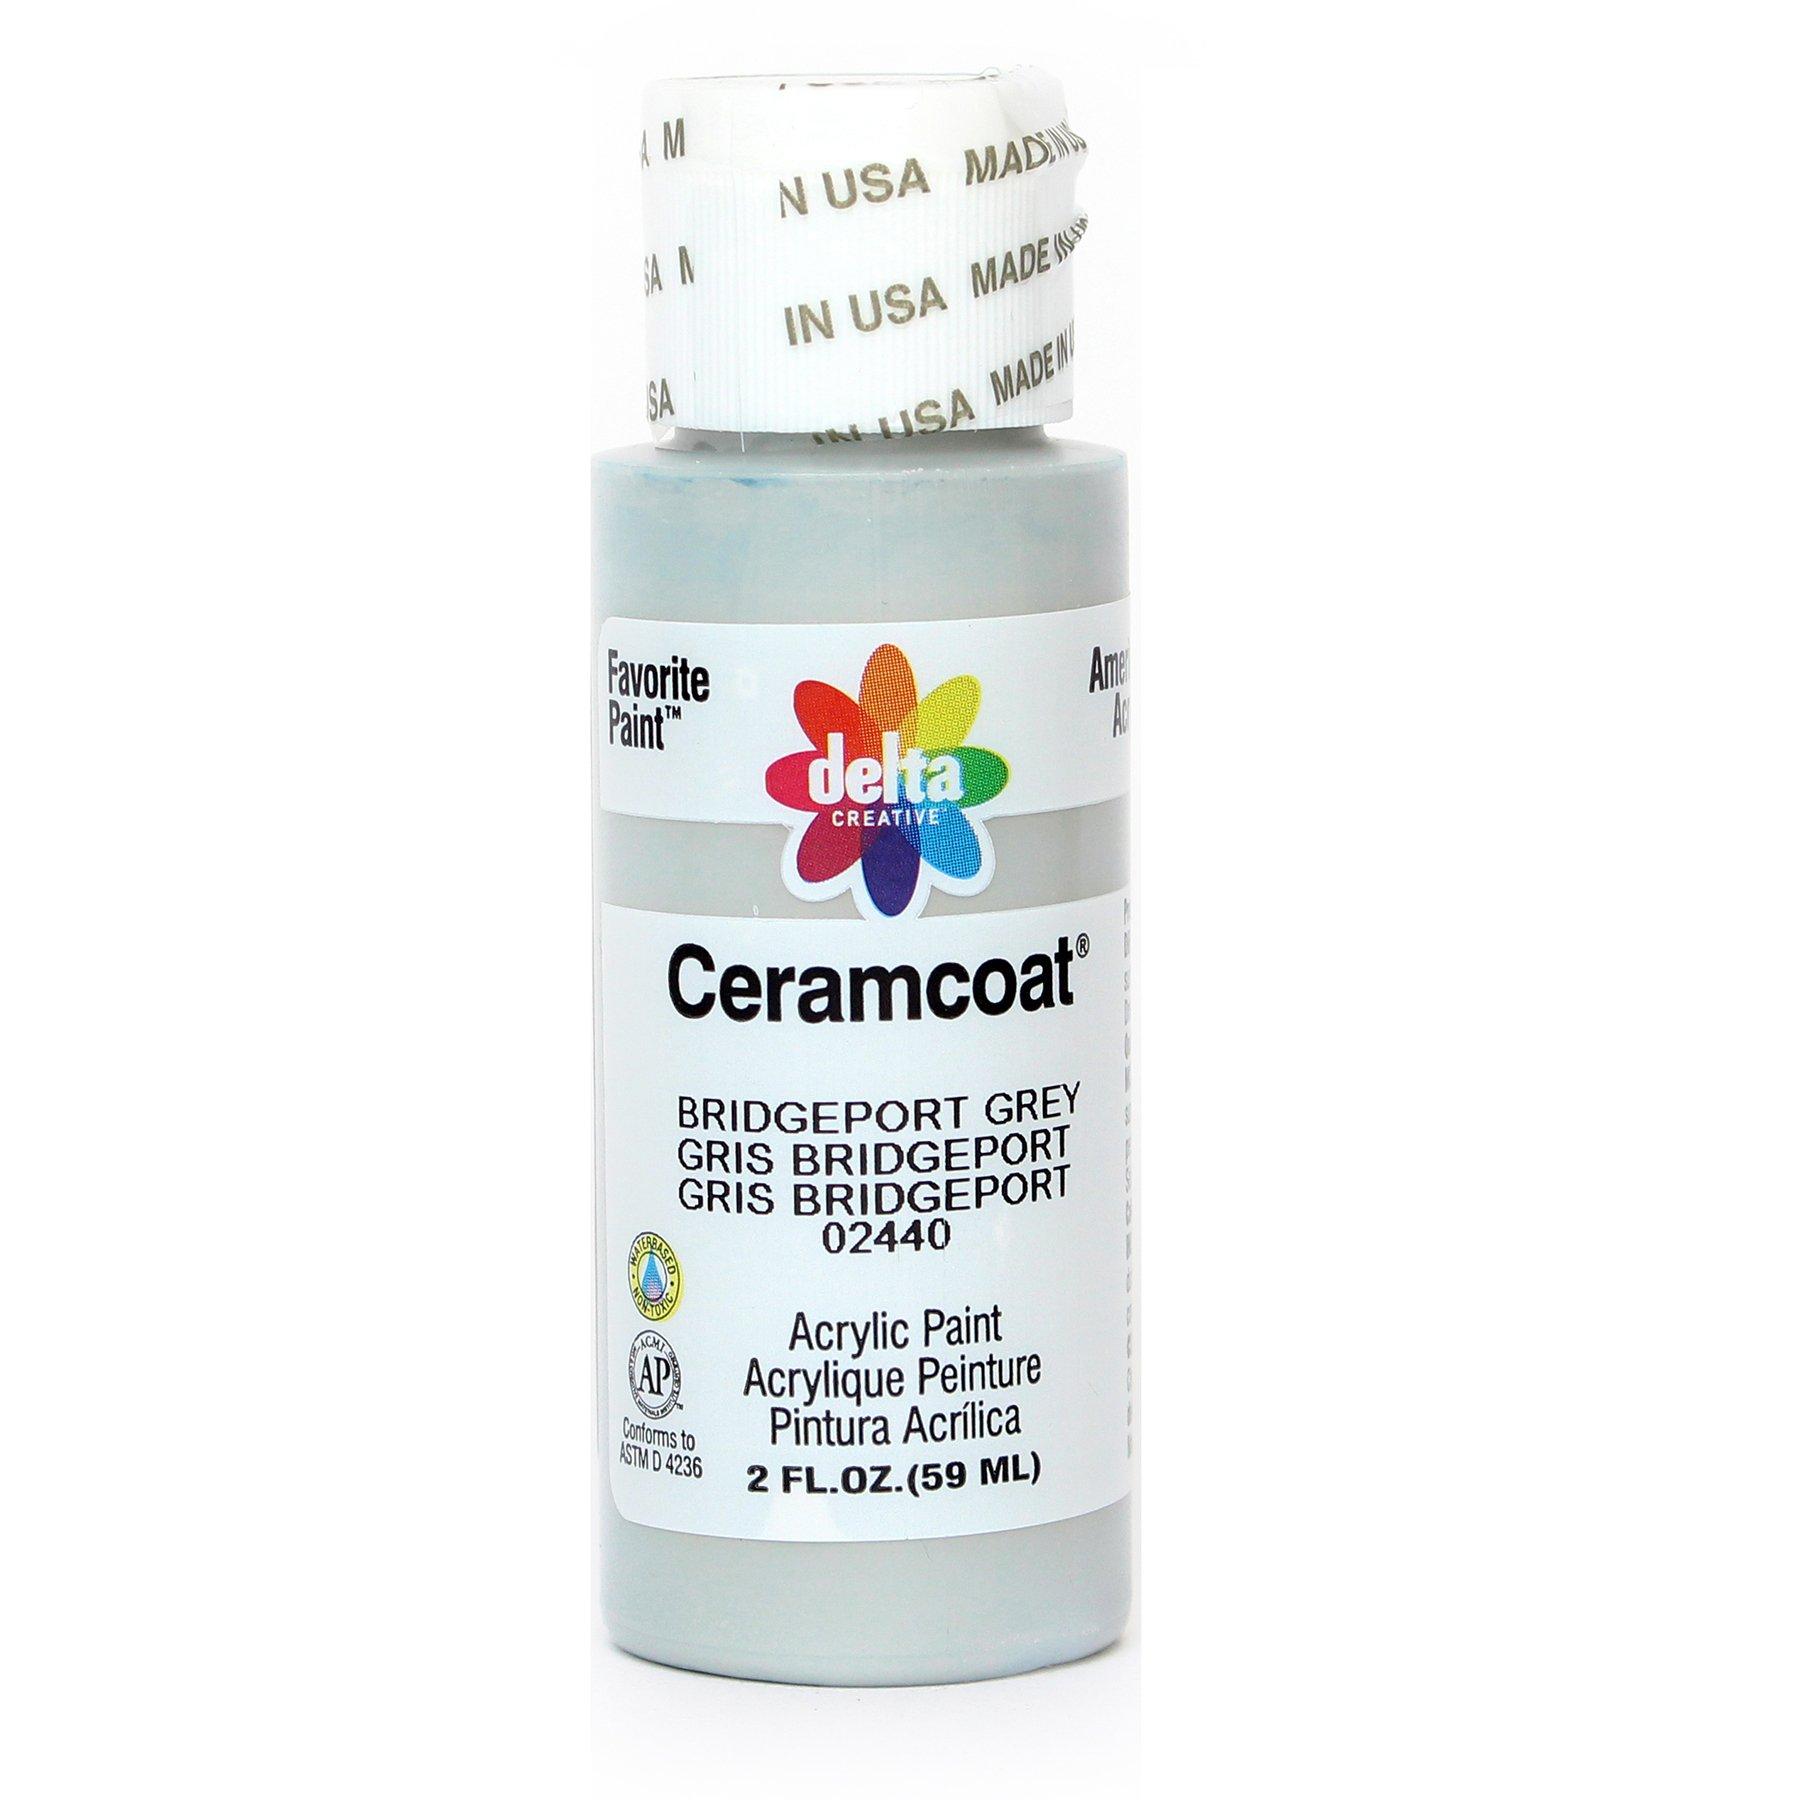 Delta Creative Ceramcoat Acrylic Paint in Assorted Colors (2 oz), 2440, Bridgeport Grey